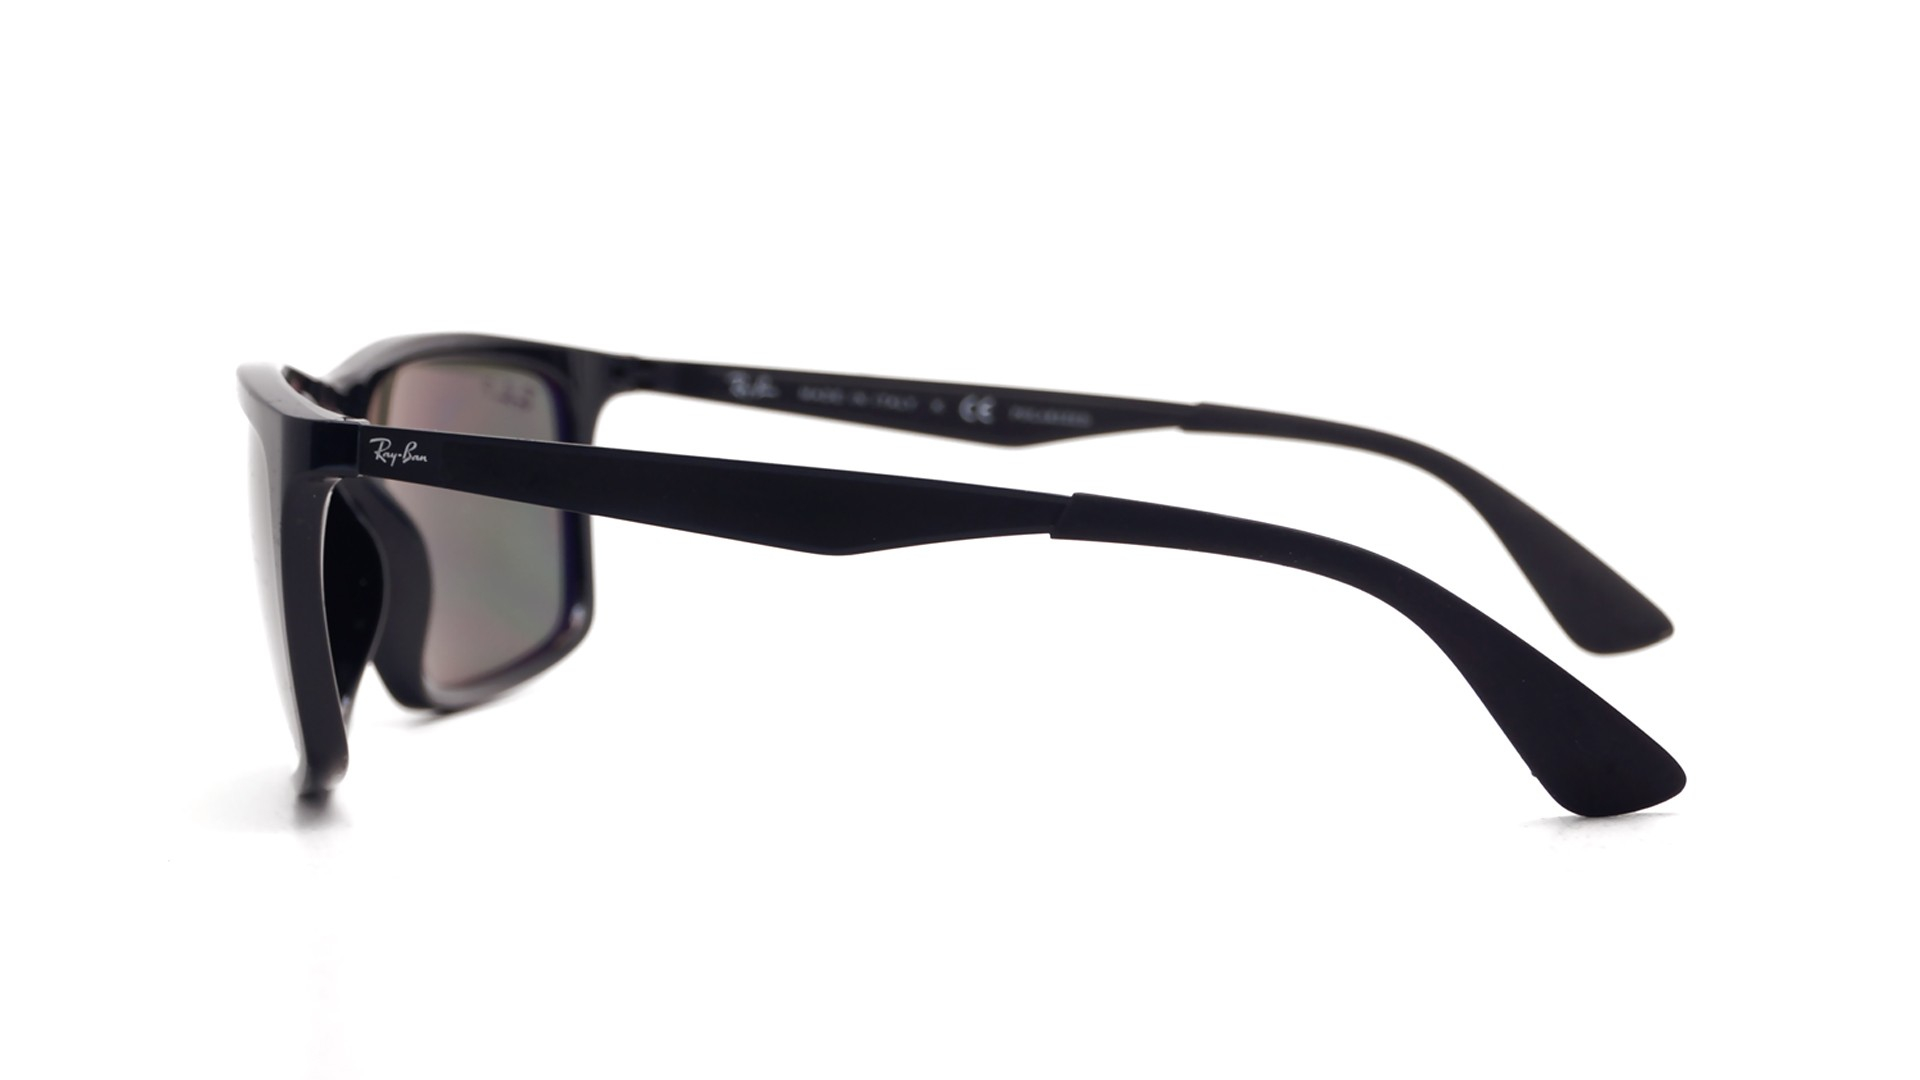 d7c340e1bb Sunglasses Ray-Ban G-15 RB4228 601 9A 58-18 Black Large Polarized